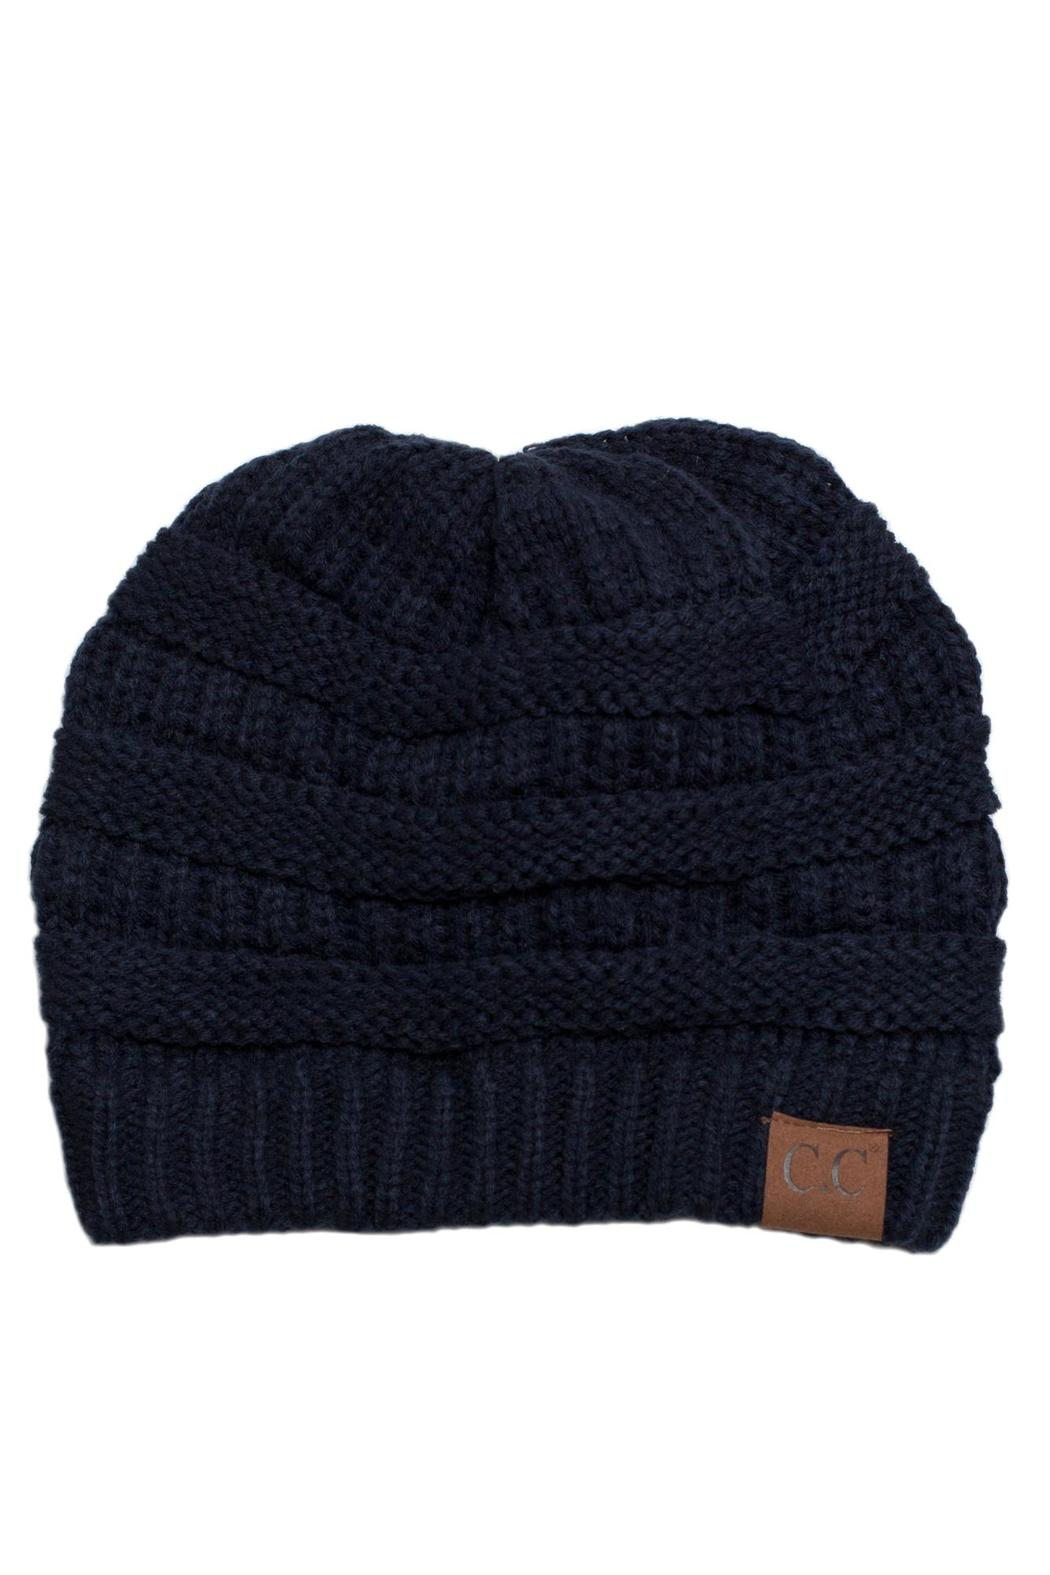 C.C. Navy Knit Beanie - Front Cropped Image